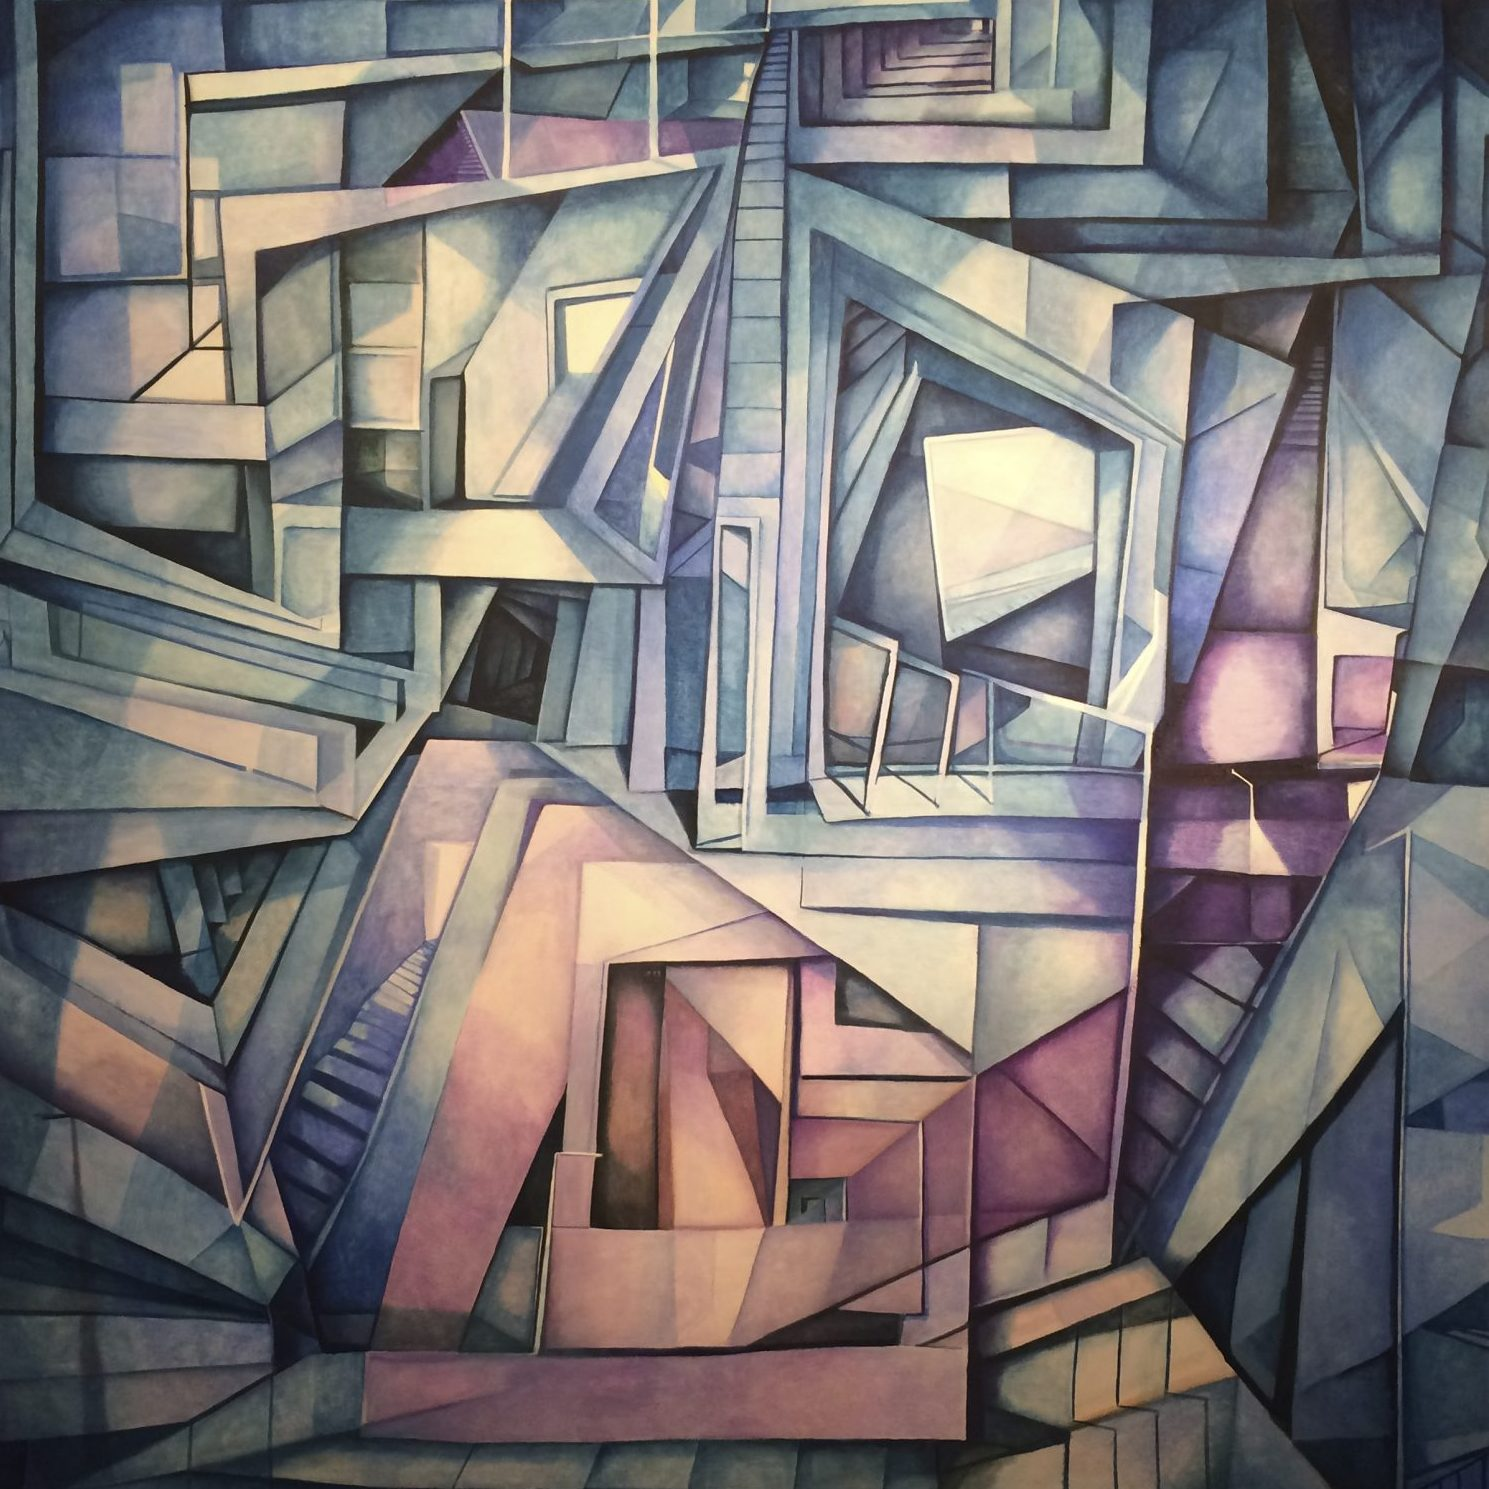 Distorted Spaces, Misleading Lines: The Amazing Geometric Surrealism of JT Thompson